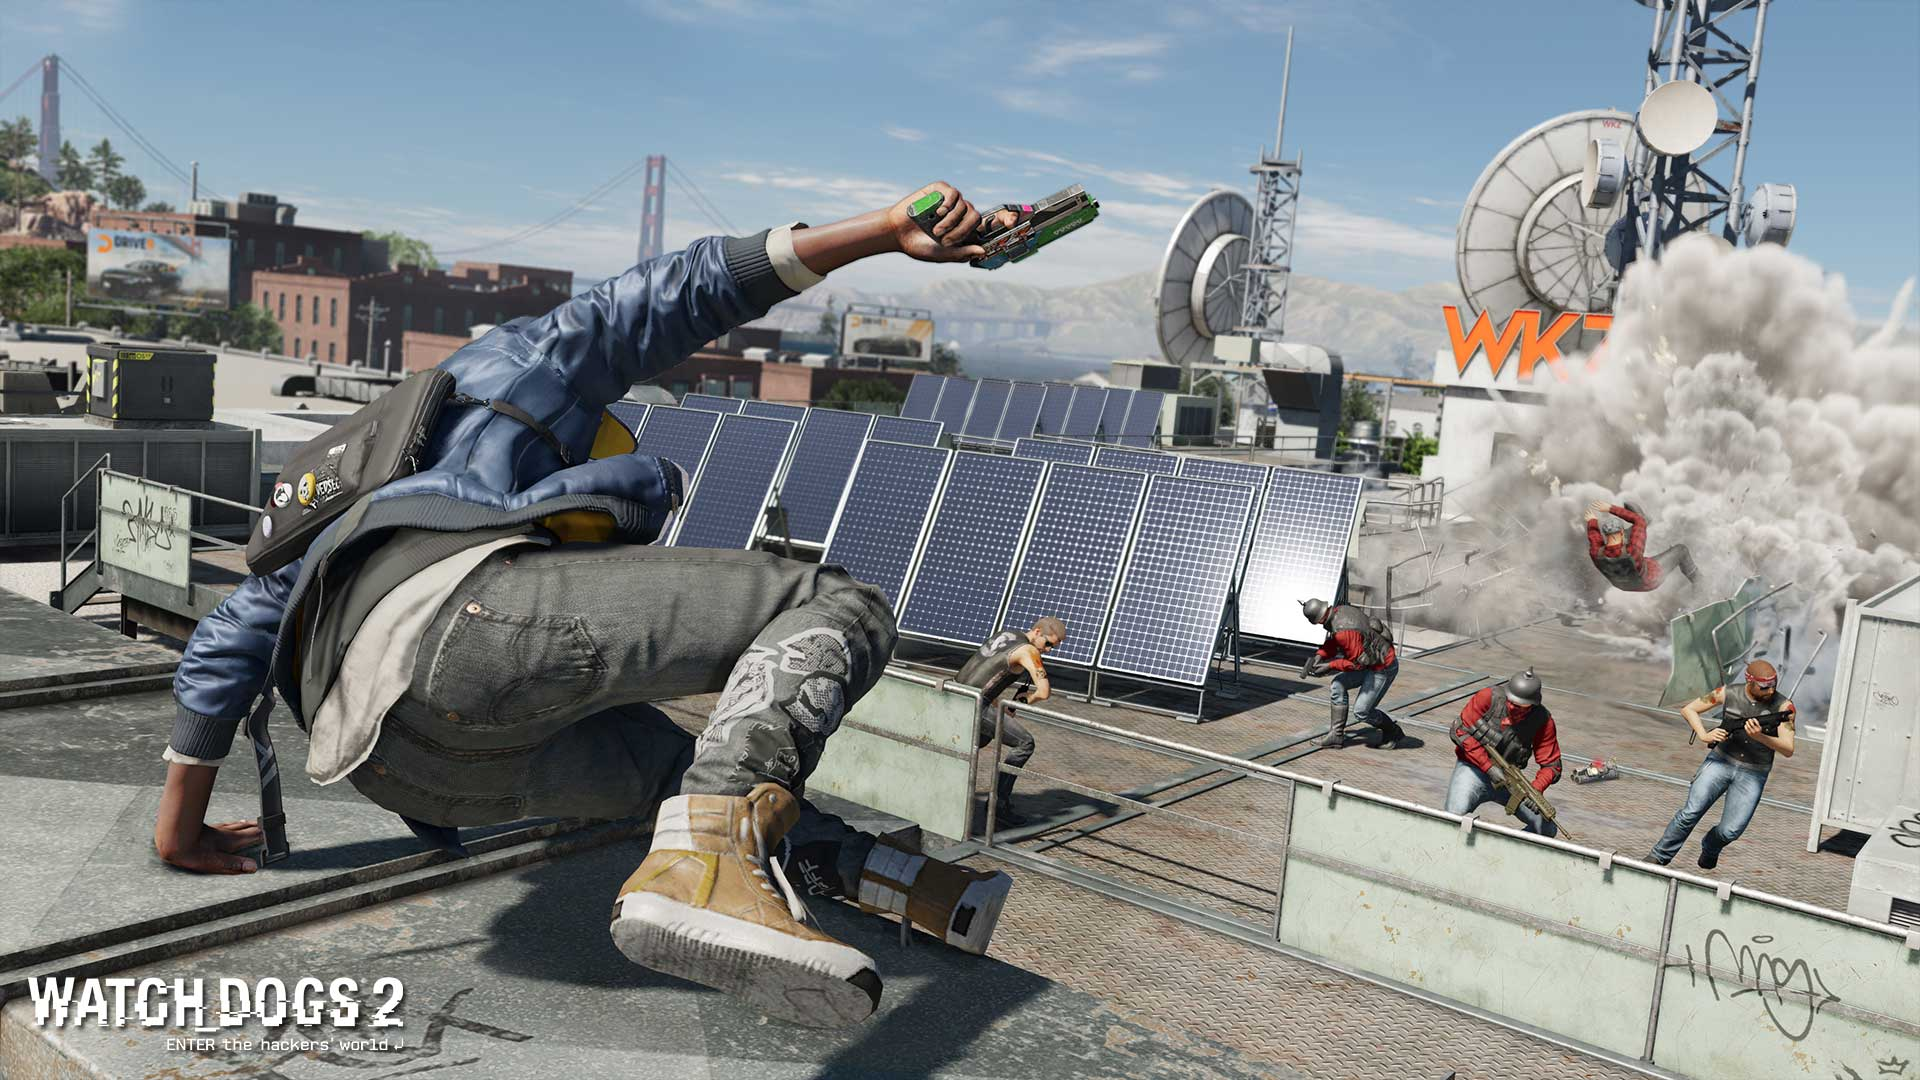 Watch Dogs 2 Graphics Options Revealed